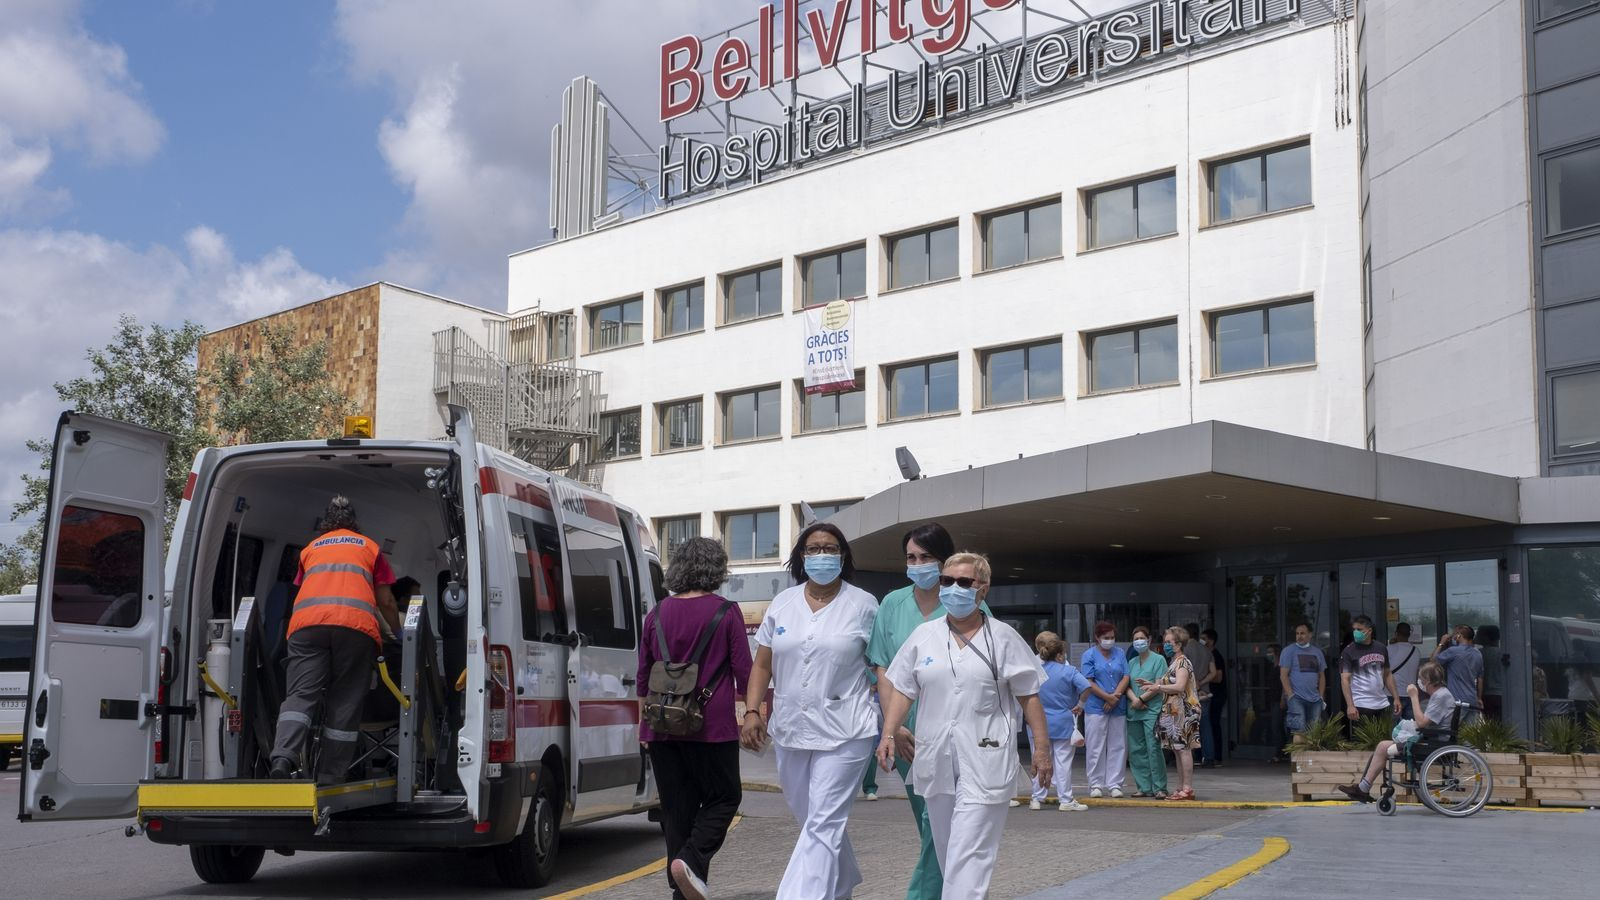 Catalan hospitals postpone non-urgent operations to deal with Covid spike